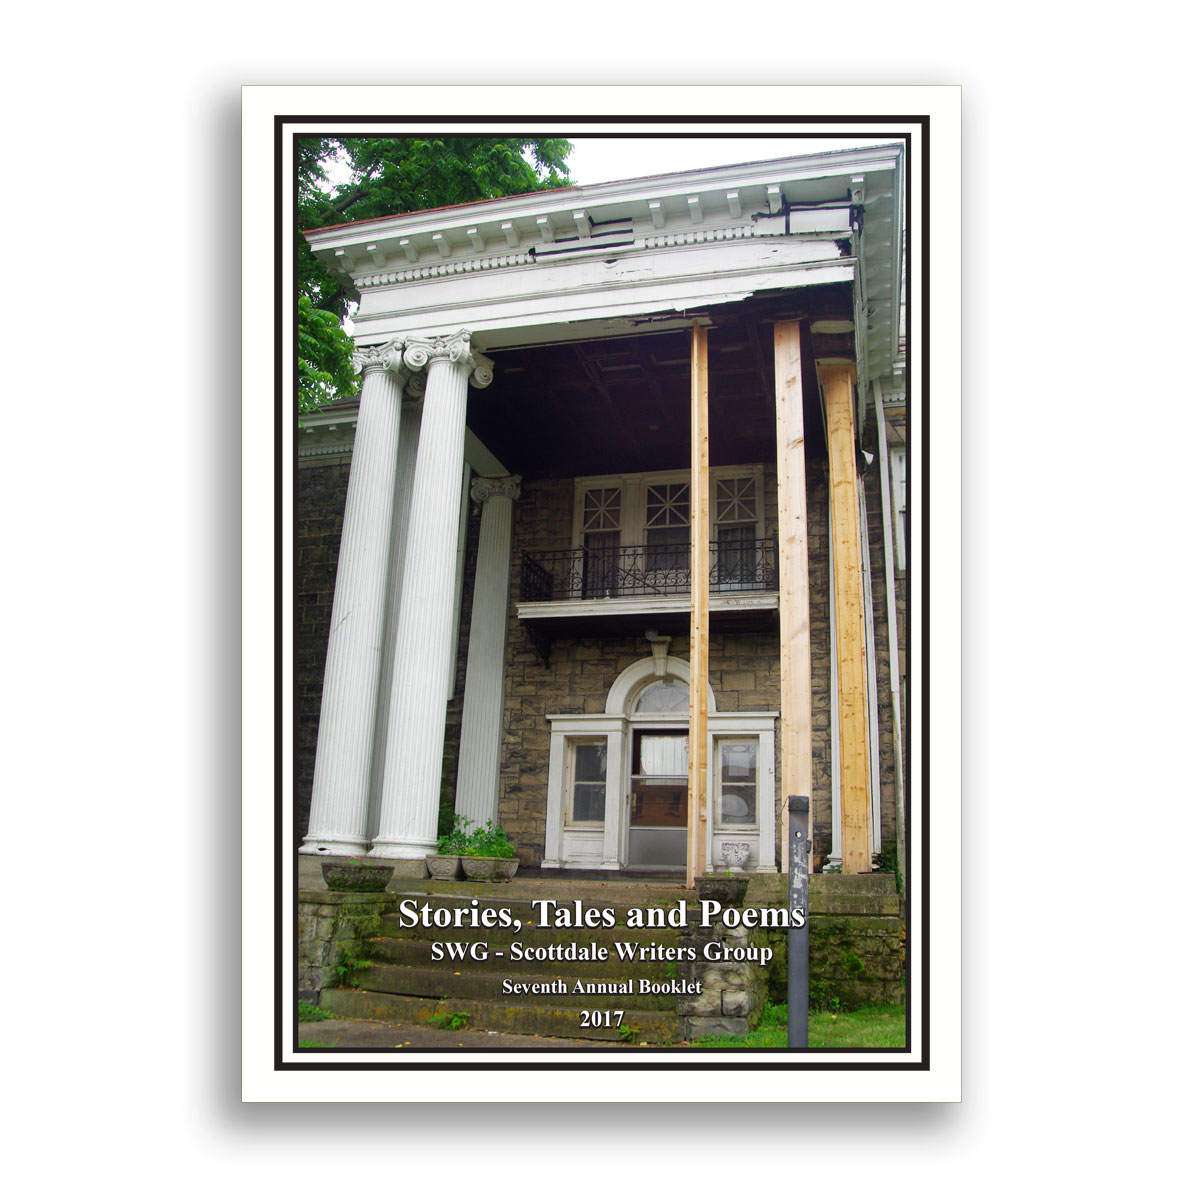 Stories, Tales and Poems by the Scottdale Writers Group